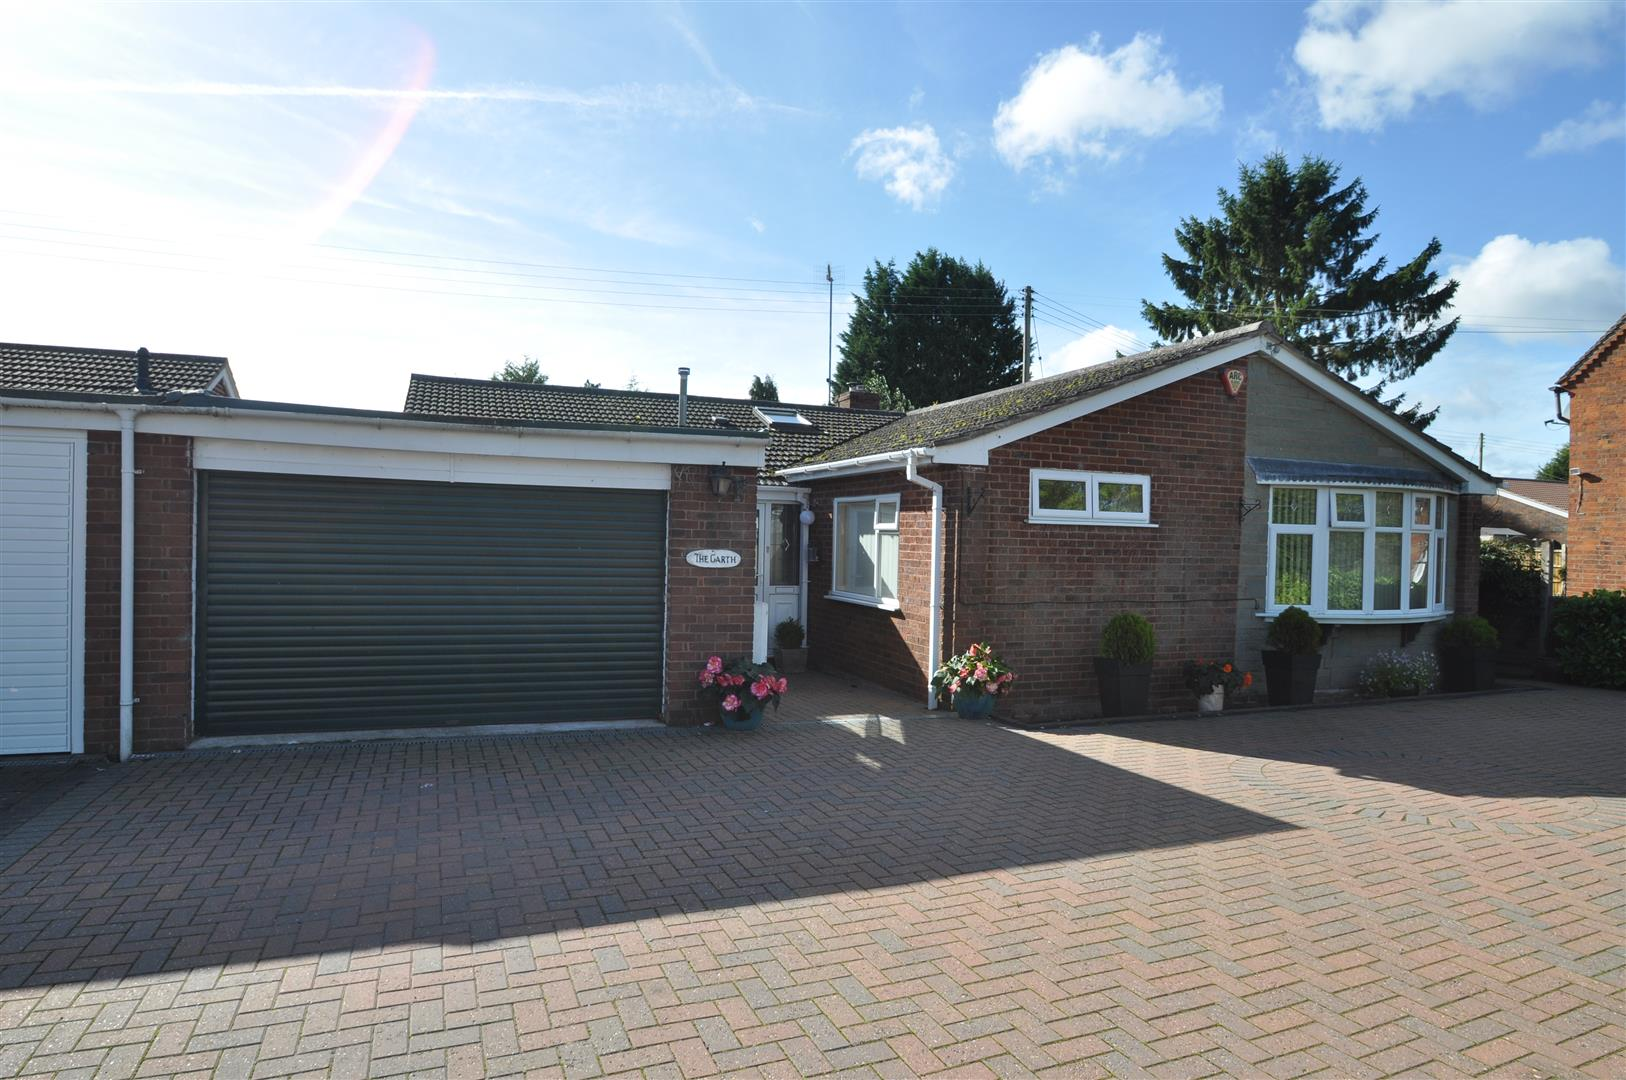 3 Bedrooms Detached Bungalow for sale in Foredraught Lane, Tibberton, Droitwich